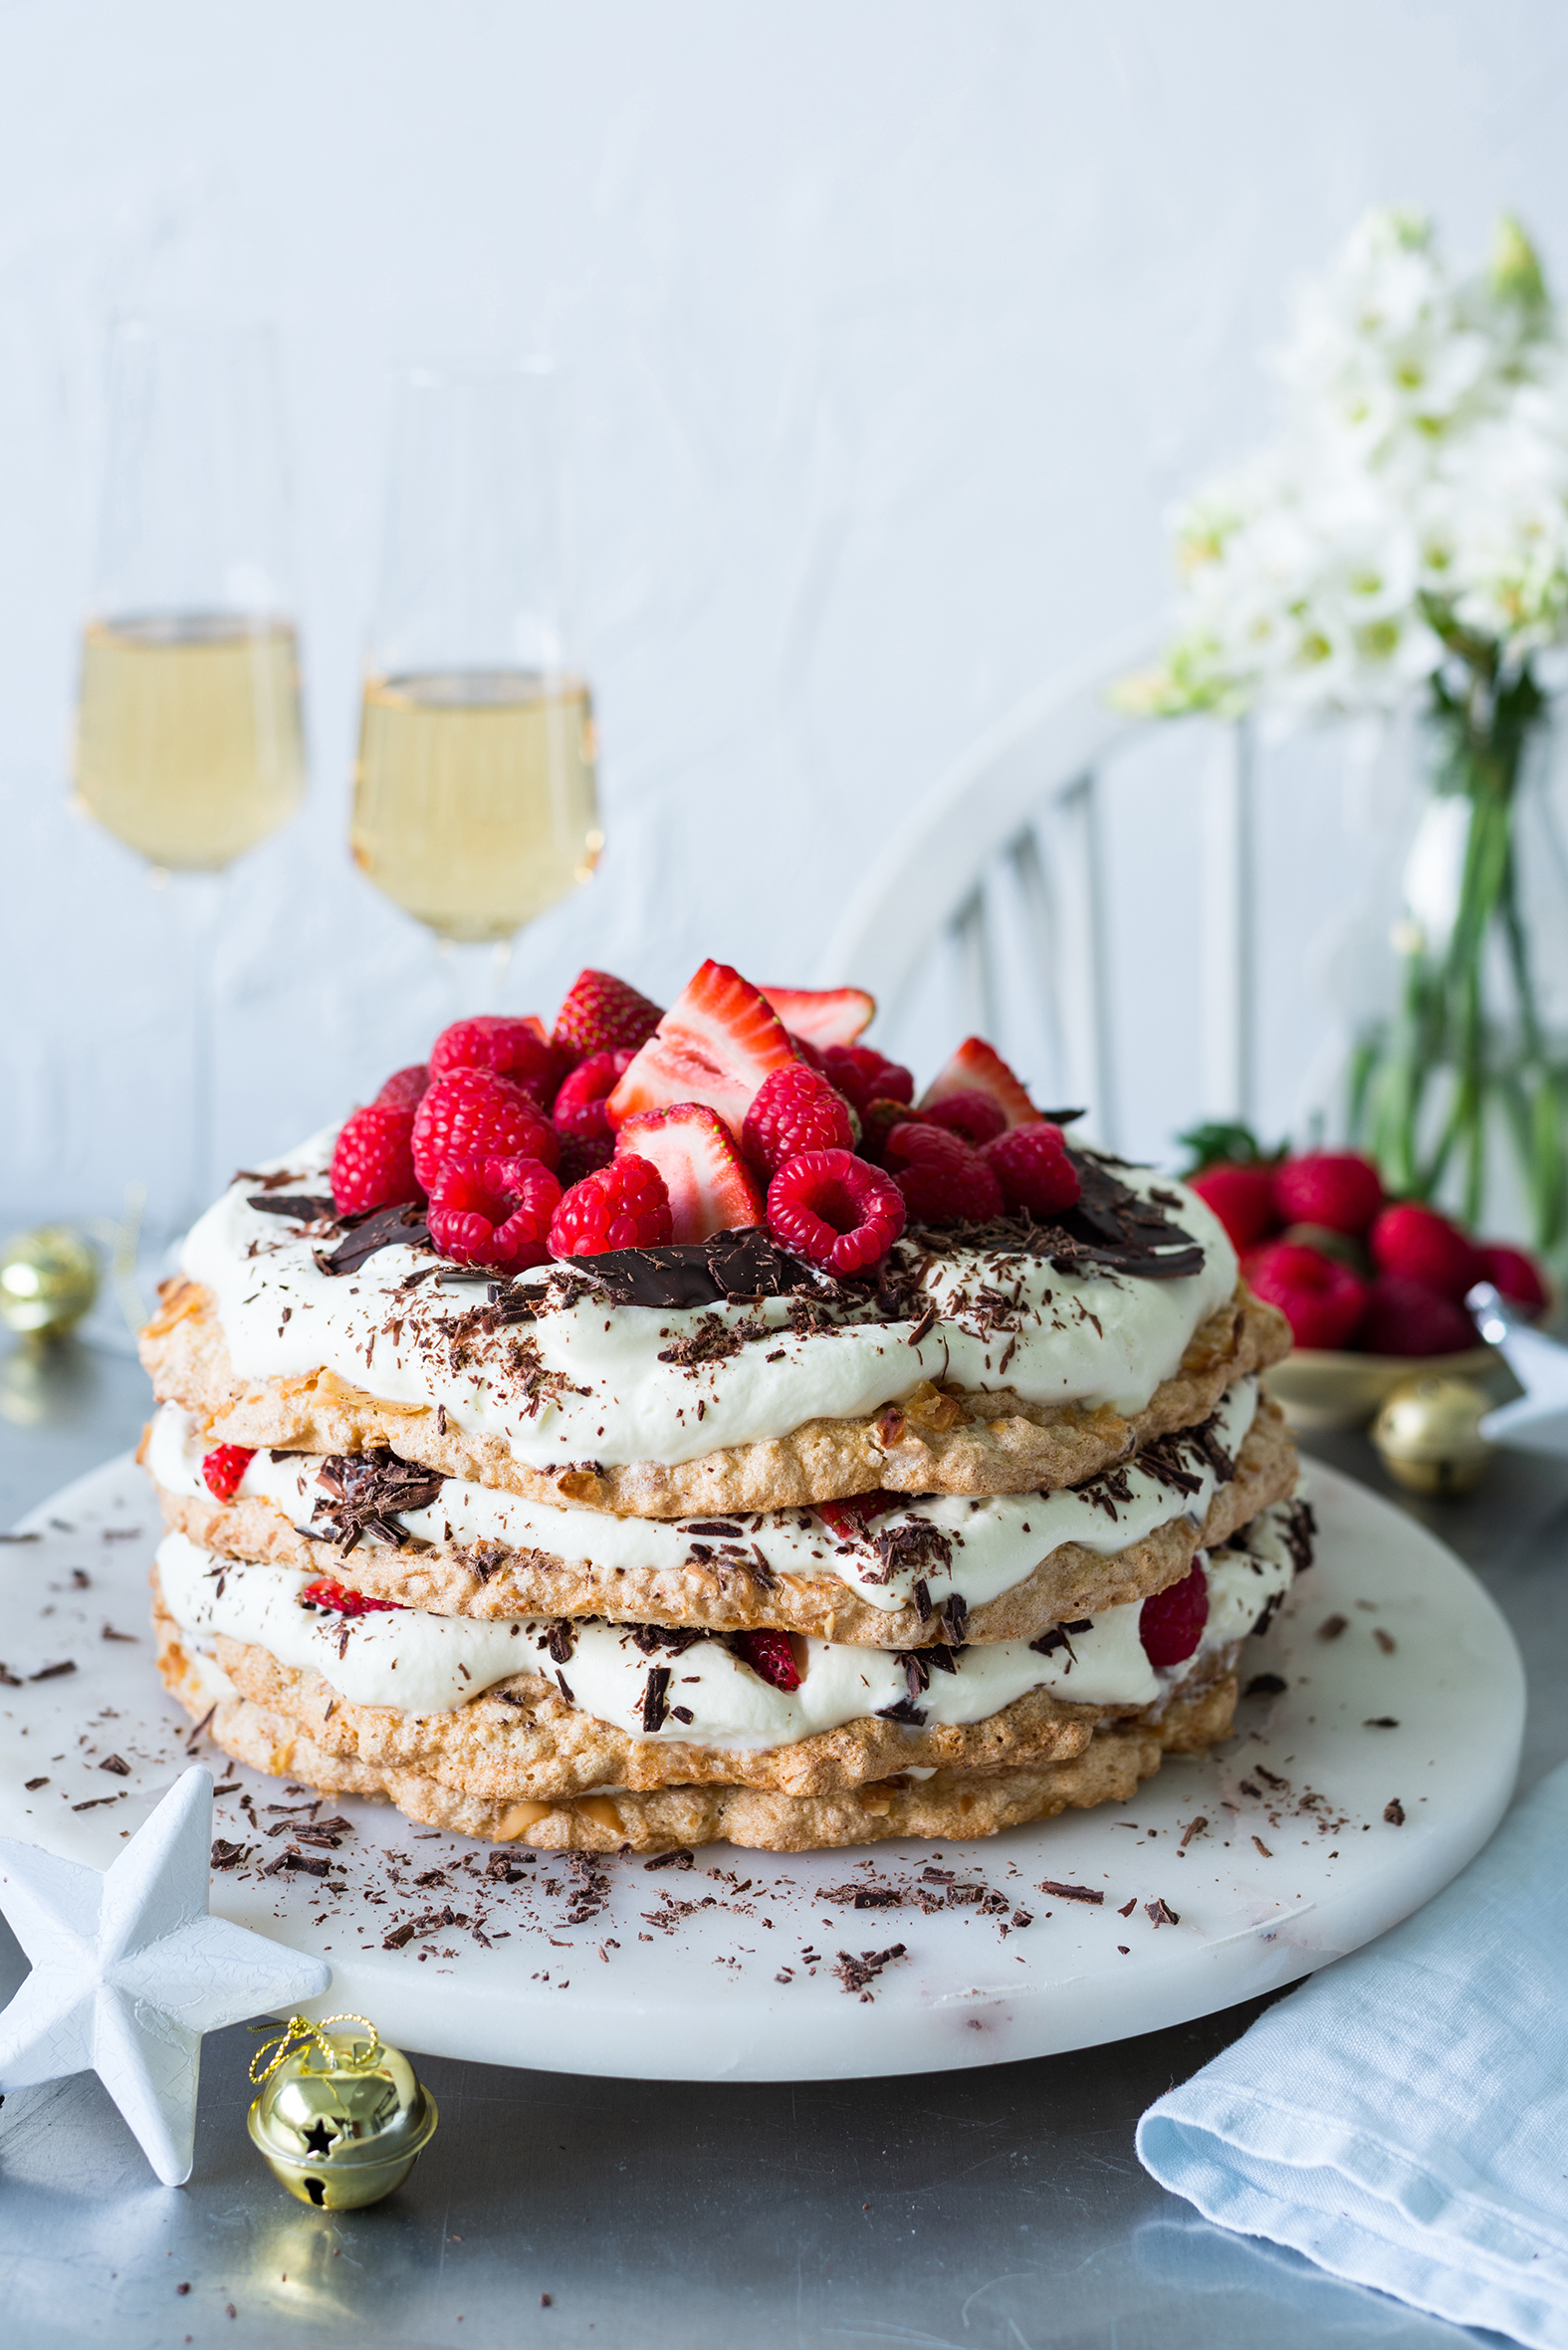 The Hungry Cook - Coconut pav-13643-3 R small.jpg